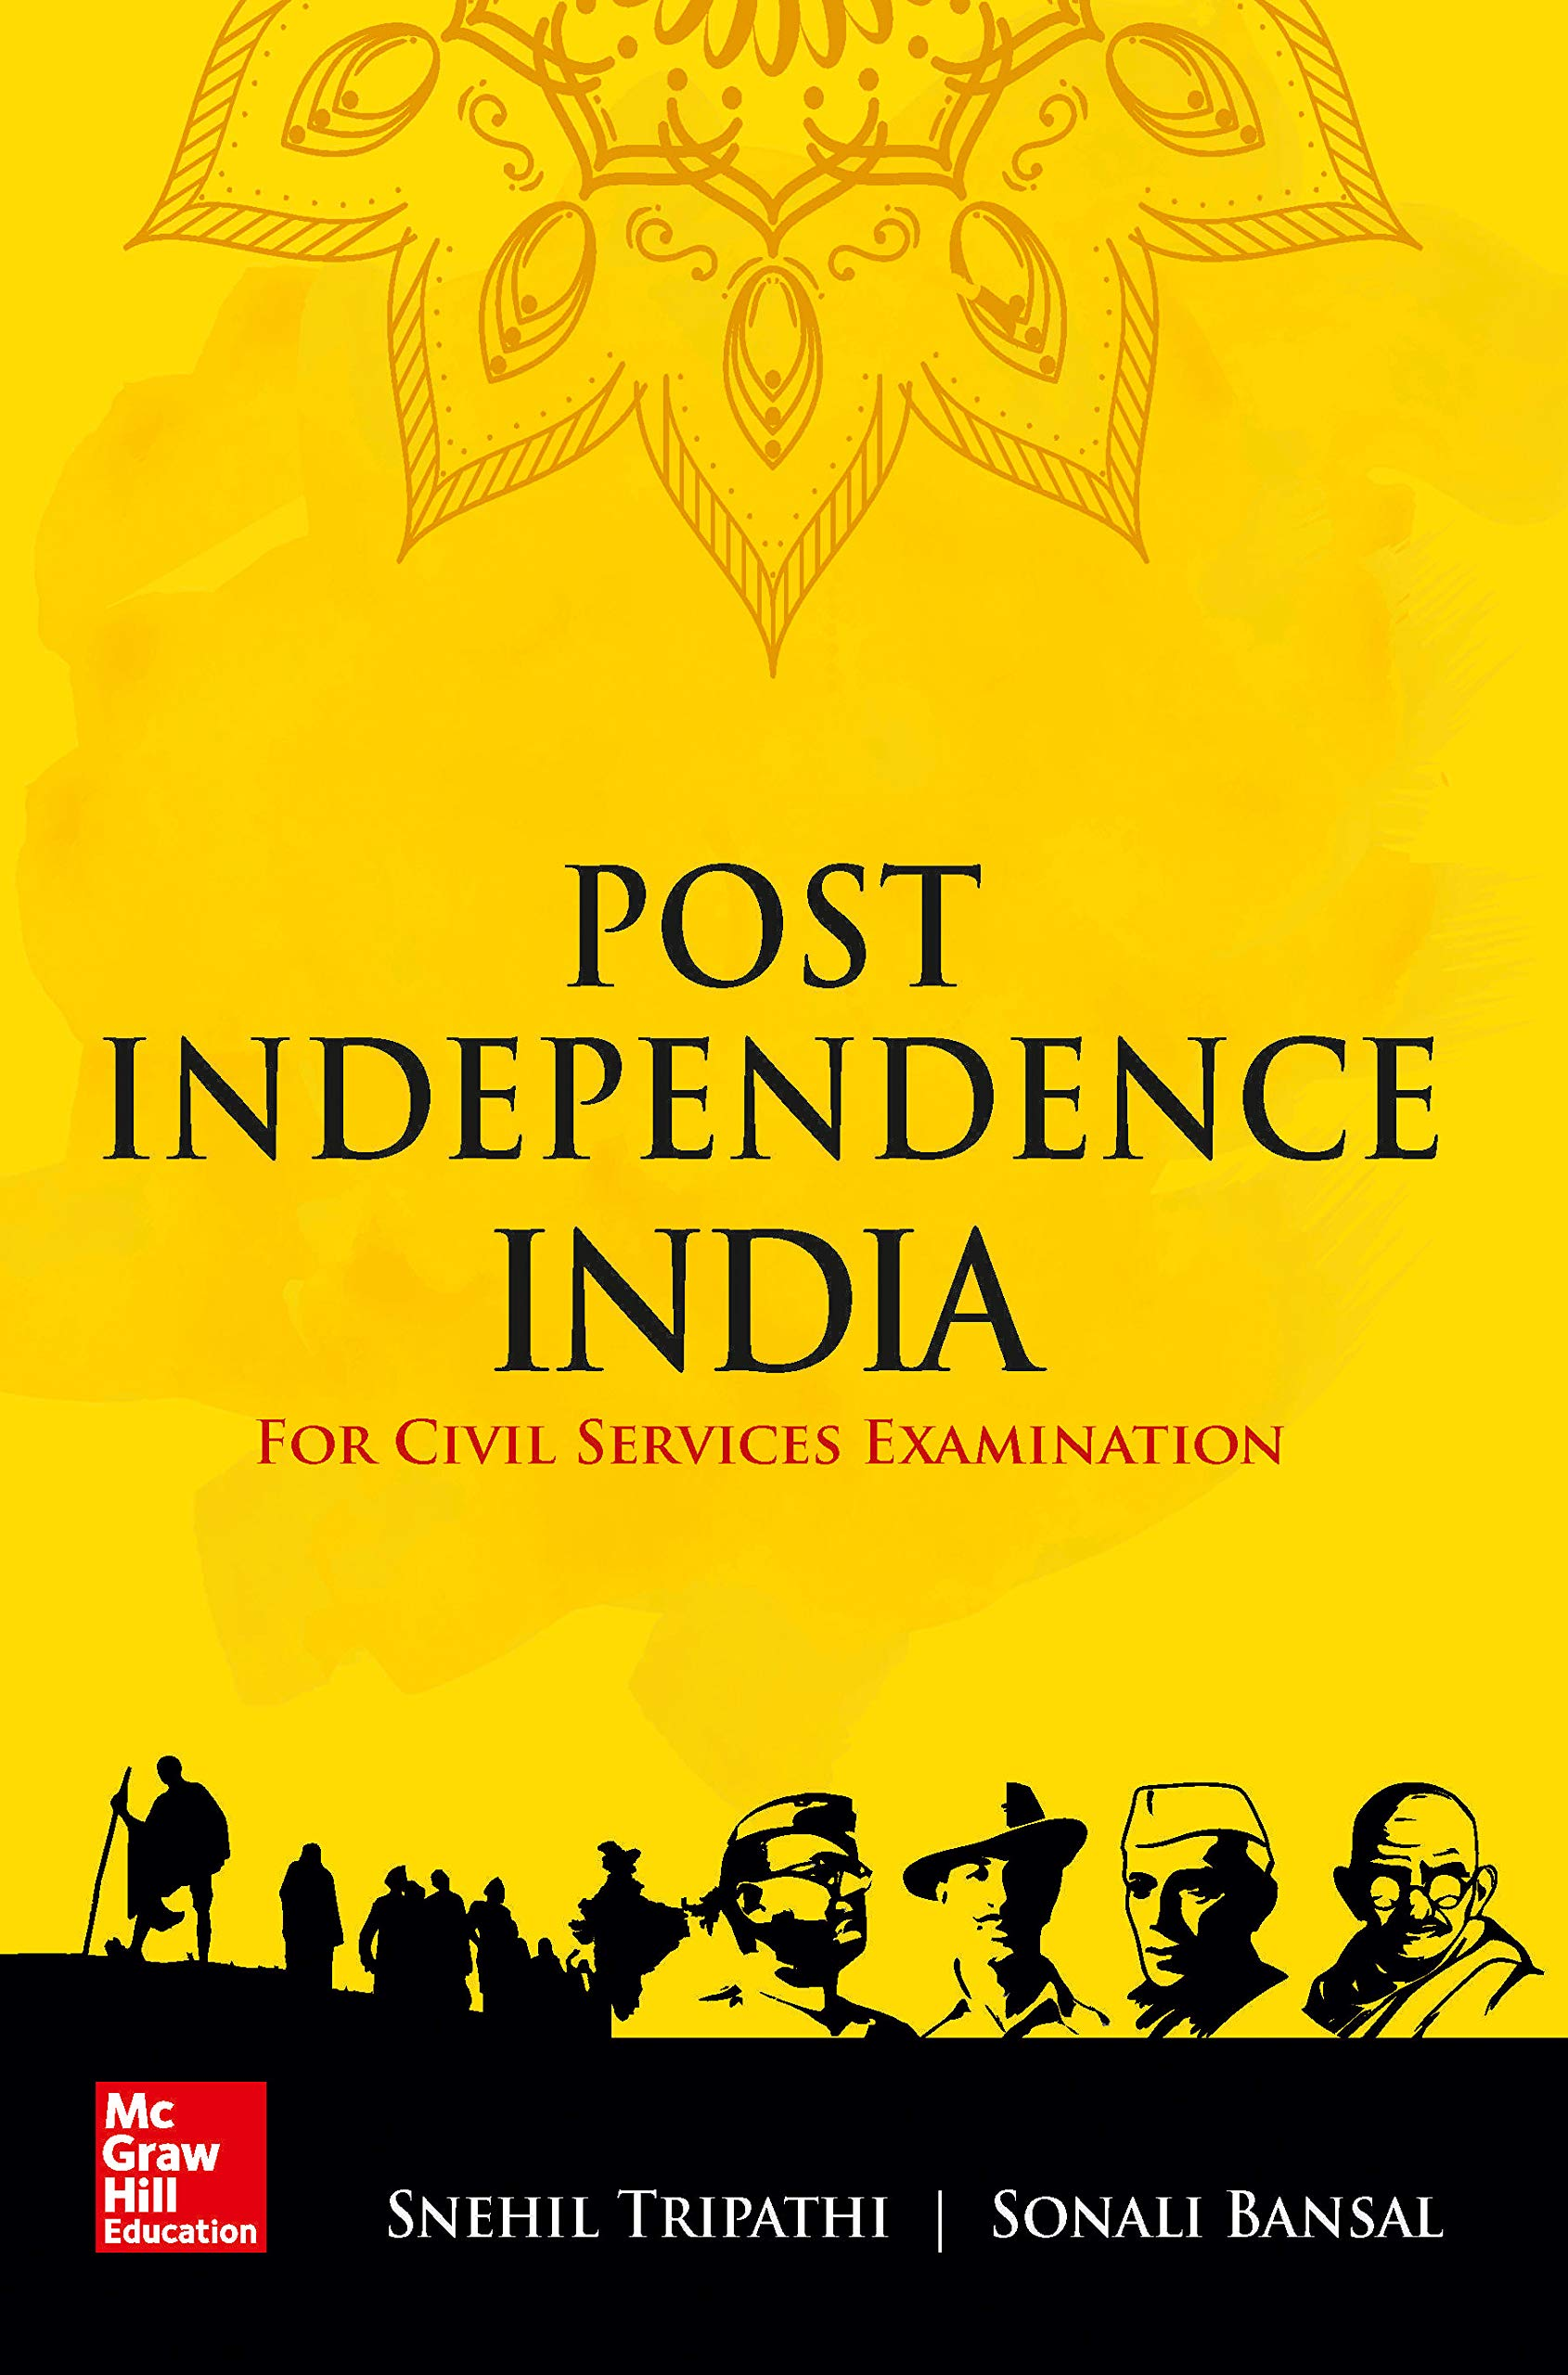 Post Independence India: For Civil Services Examinations